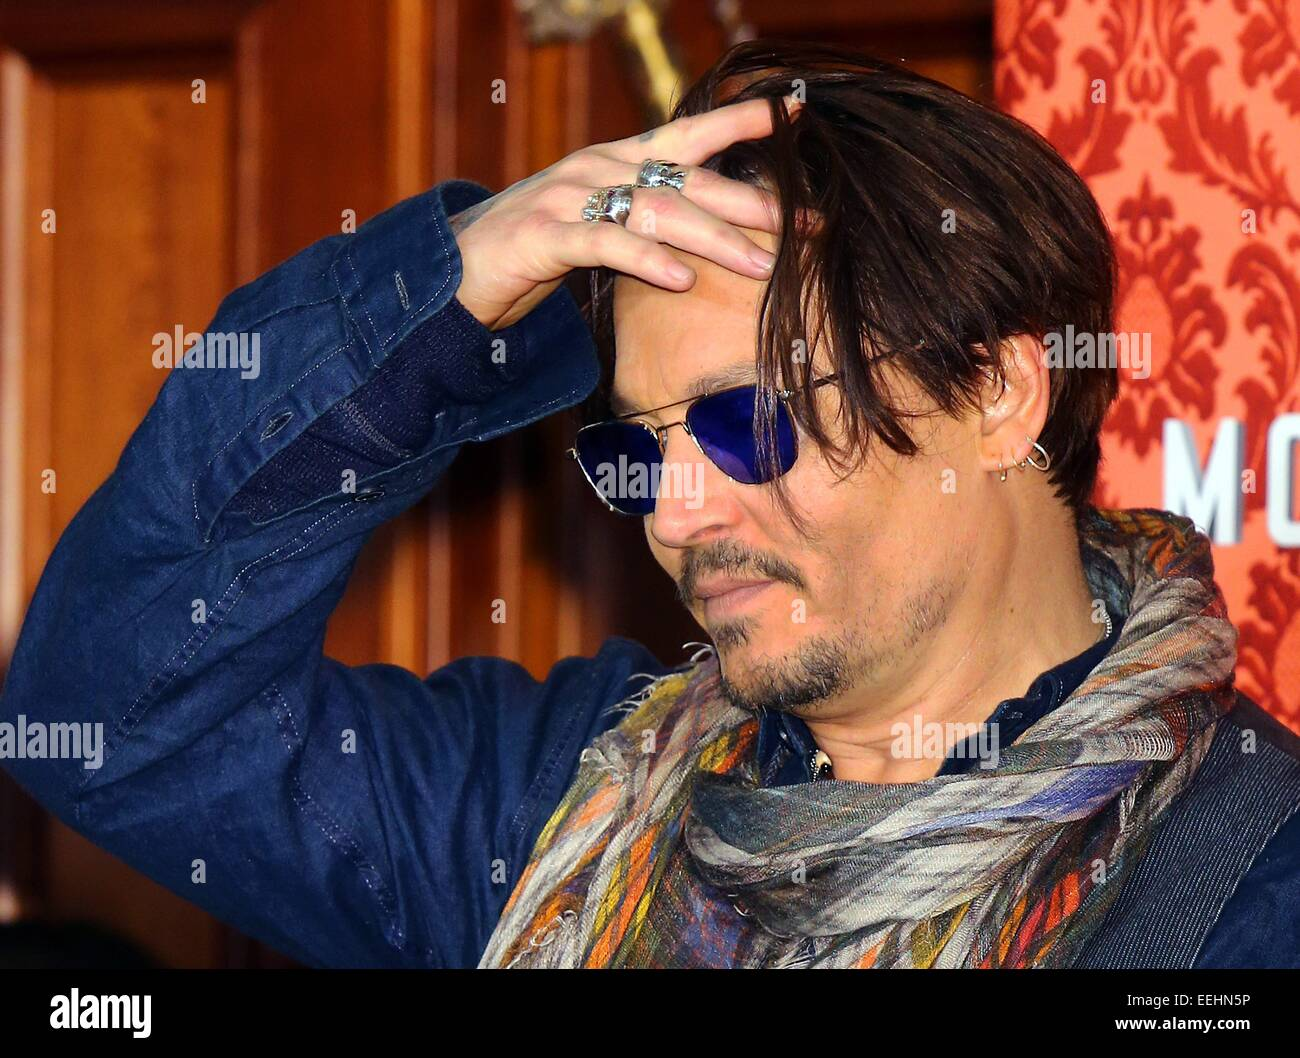 London, UK. 18th Jan, 2015. American actor Johnny Depp attends the photocall for the film 'Mordecai' in - Stock Image